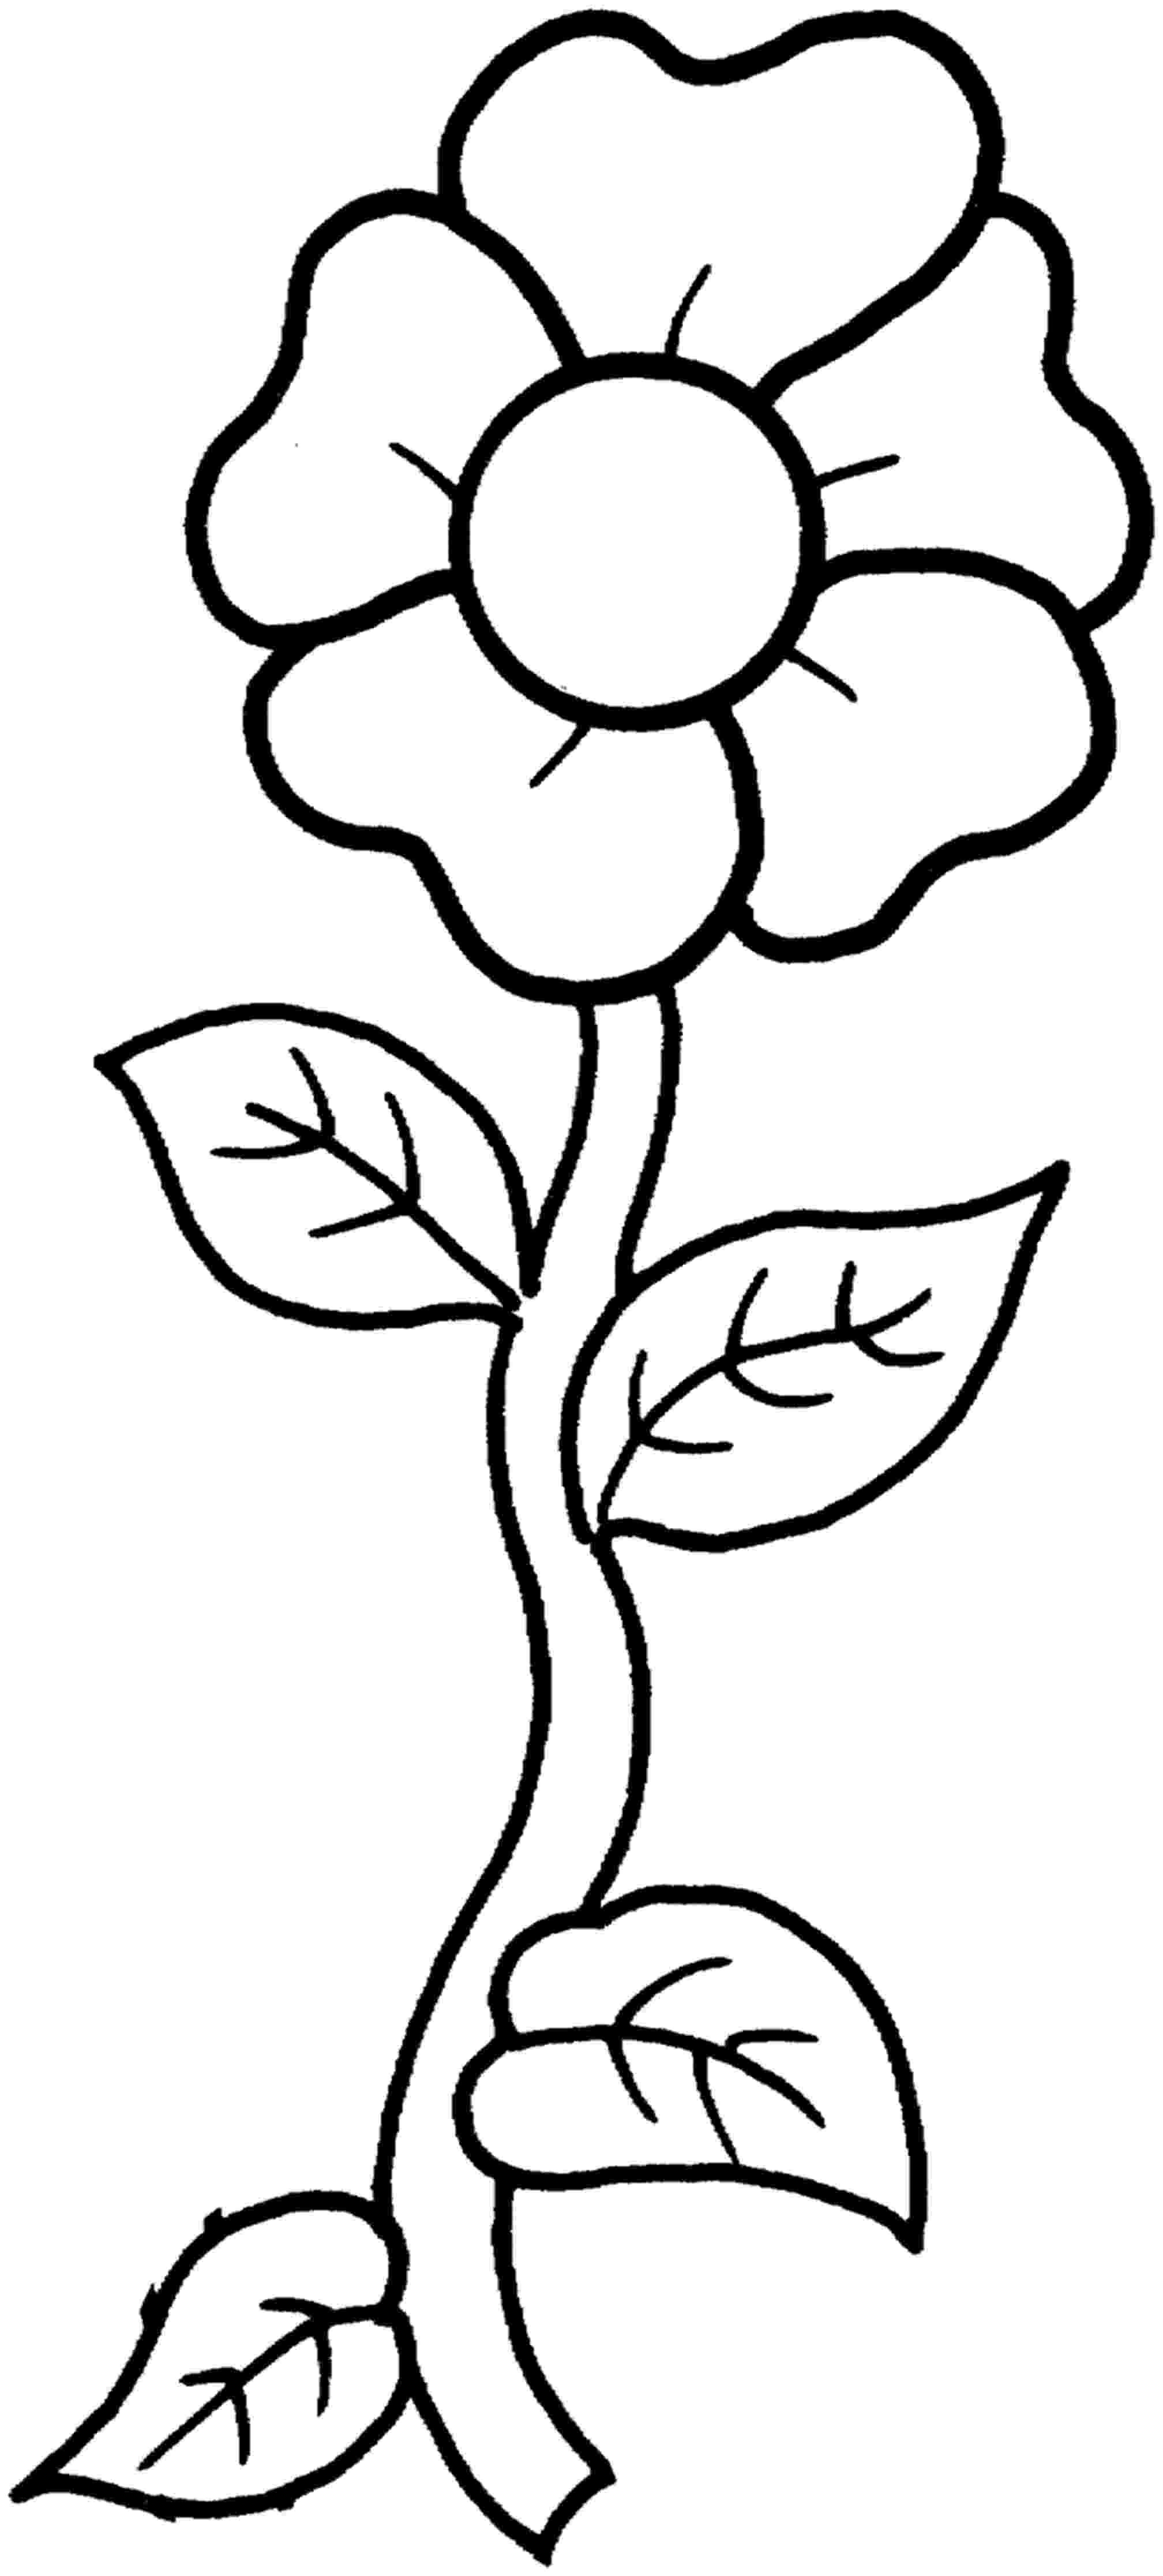 coloring flower pictures free printable flower coloring pages for kids best pictures flower coloring